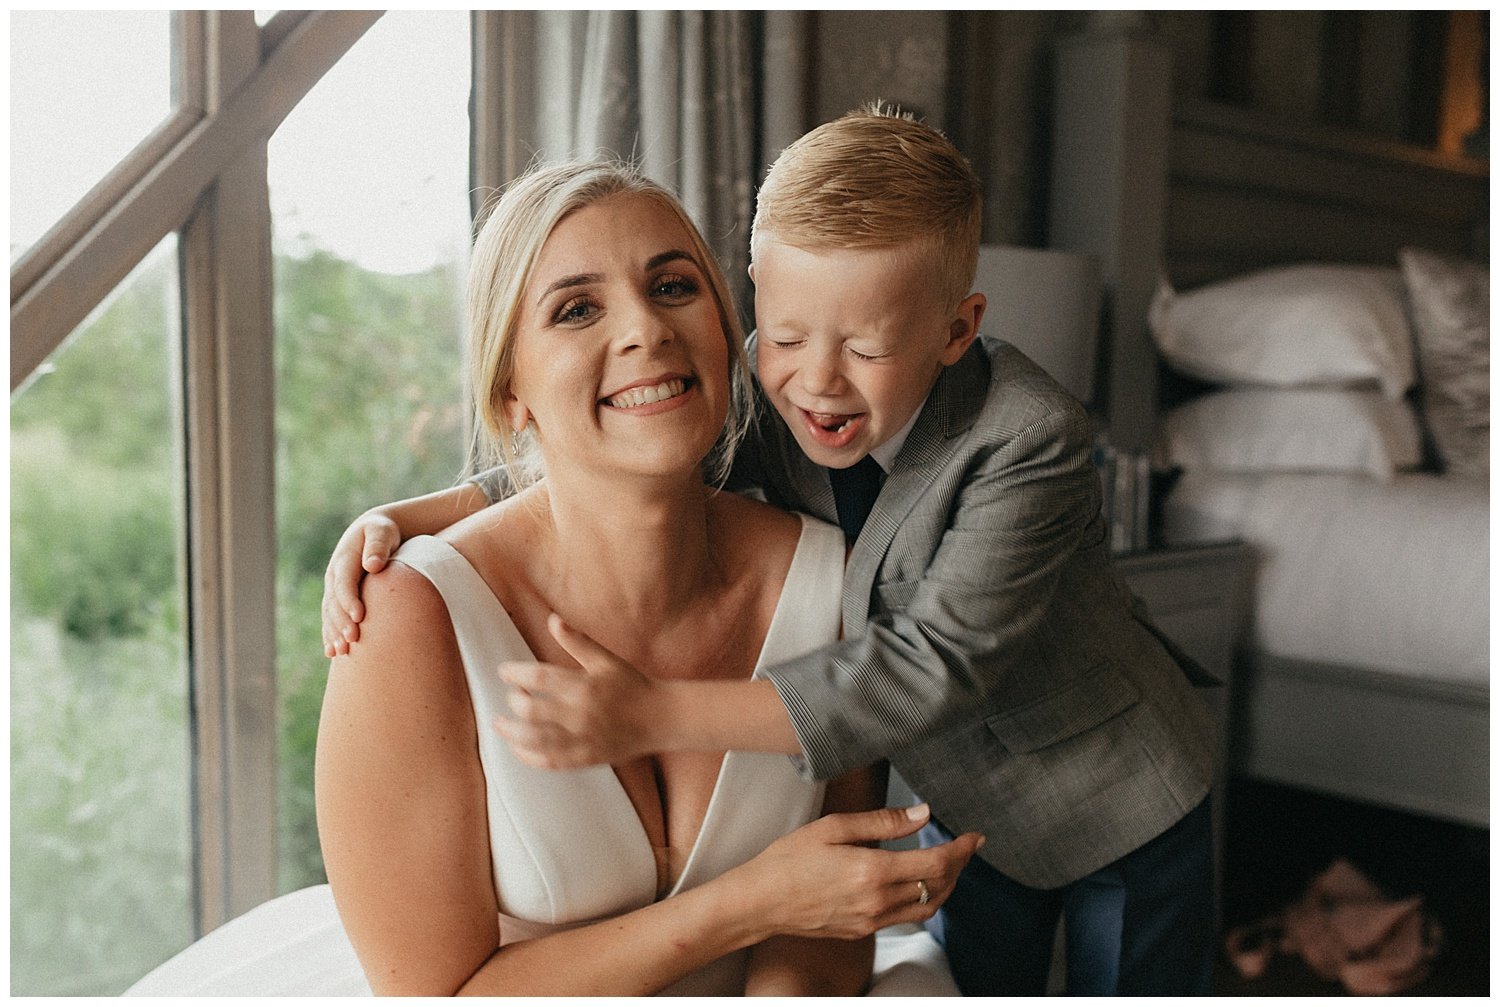 Weddings-at-Crondon-Park-the-bride-and-son-laugh